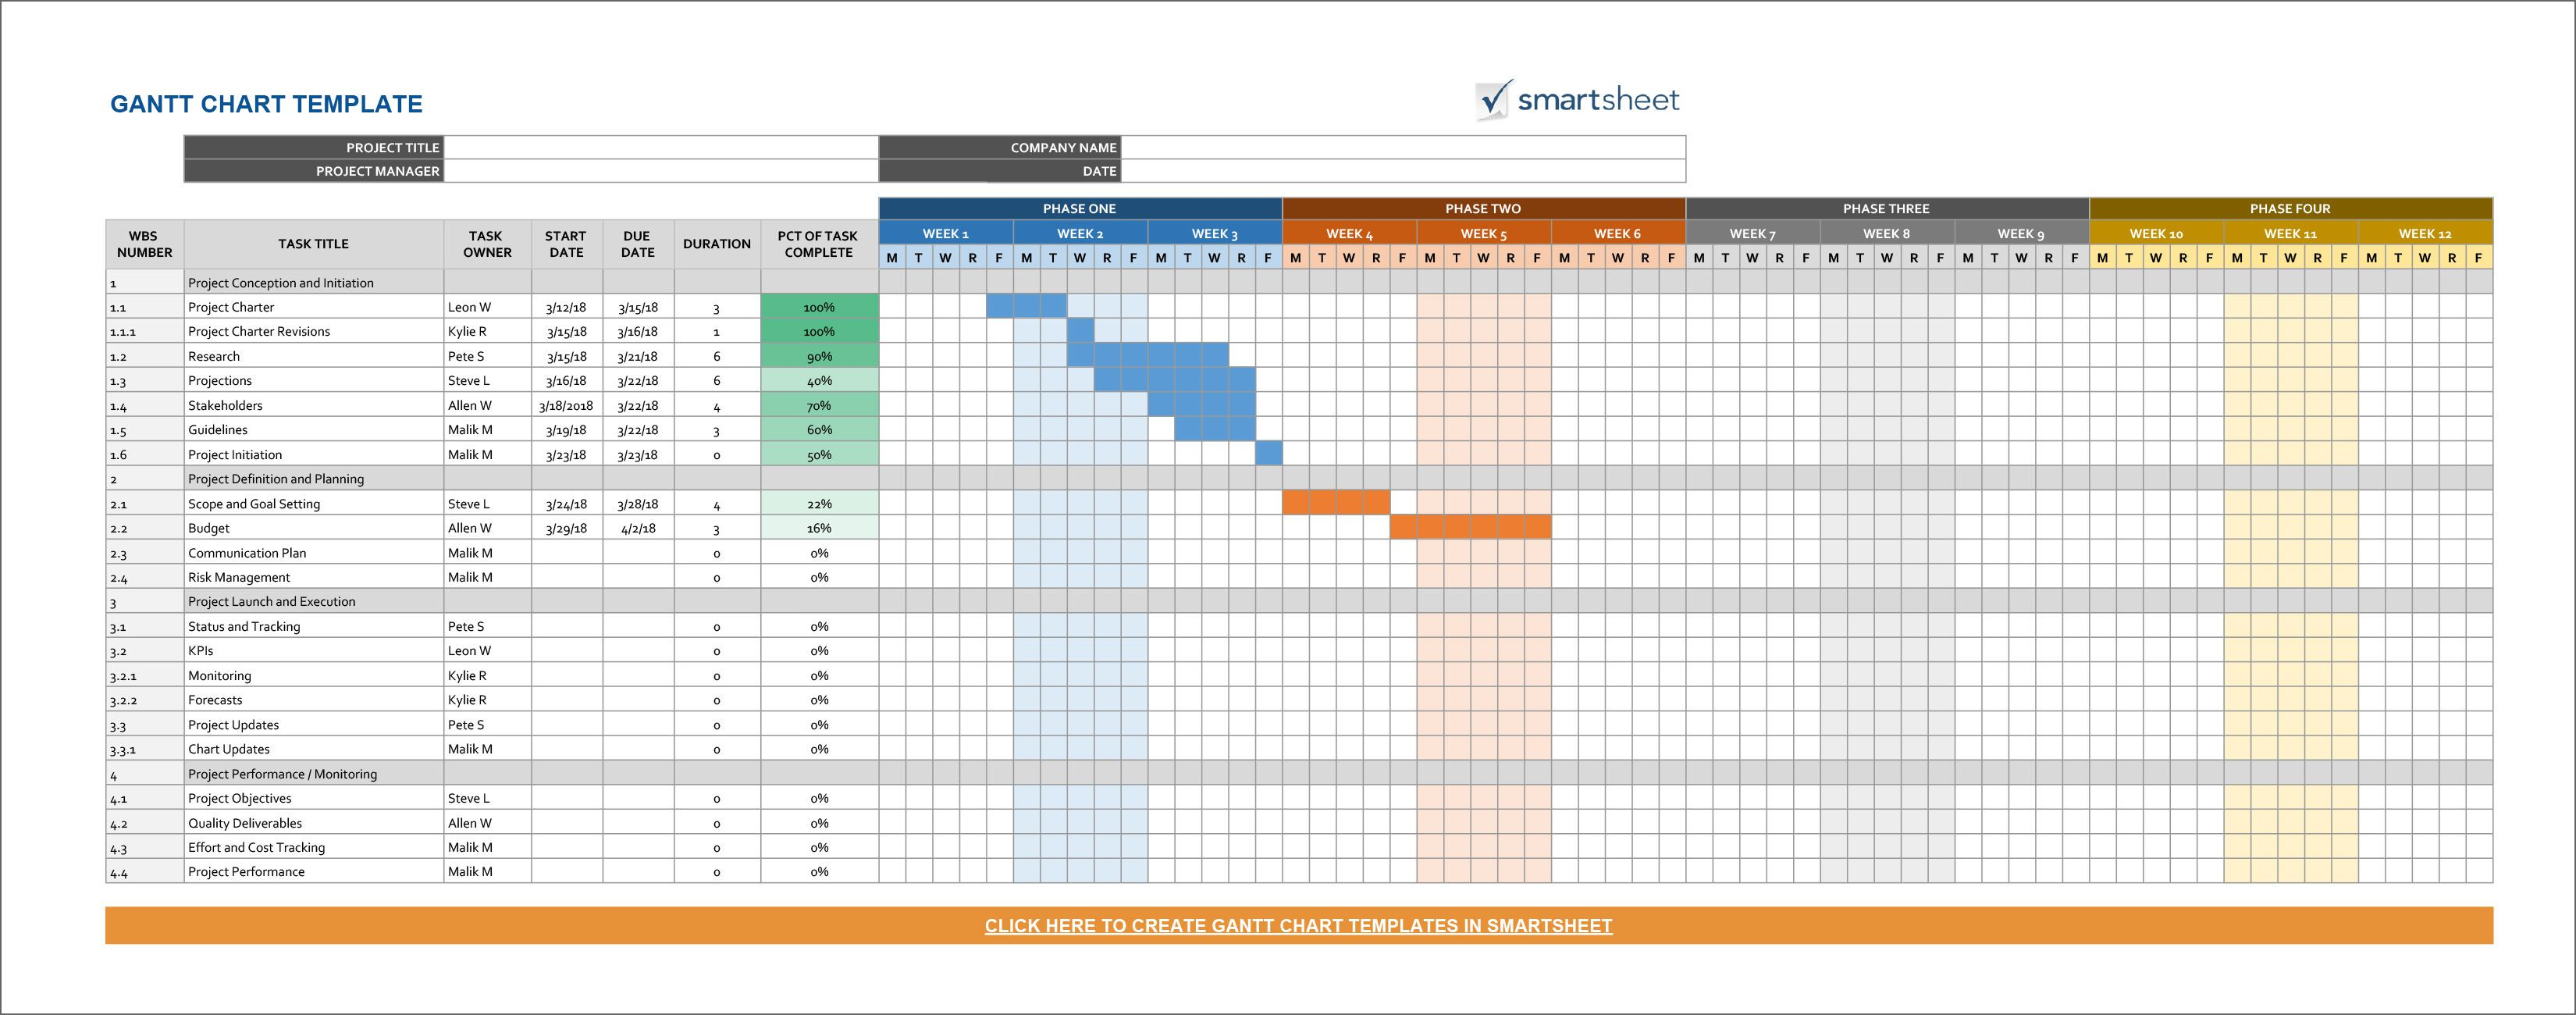 002 Surprising Microsoft Excel Timeline Template Highest Clarity  Templates Project Free DownloadFull